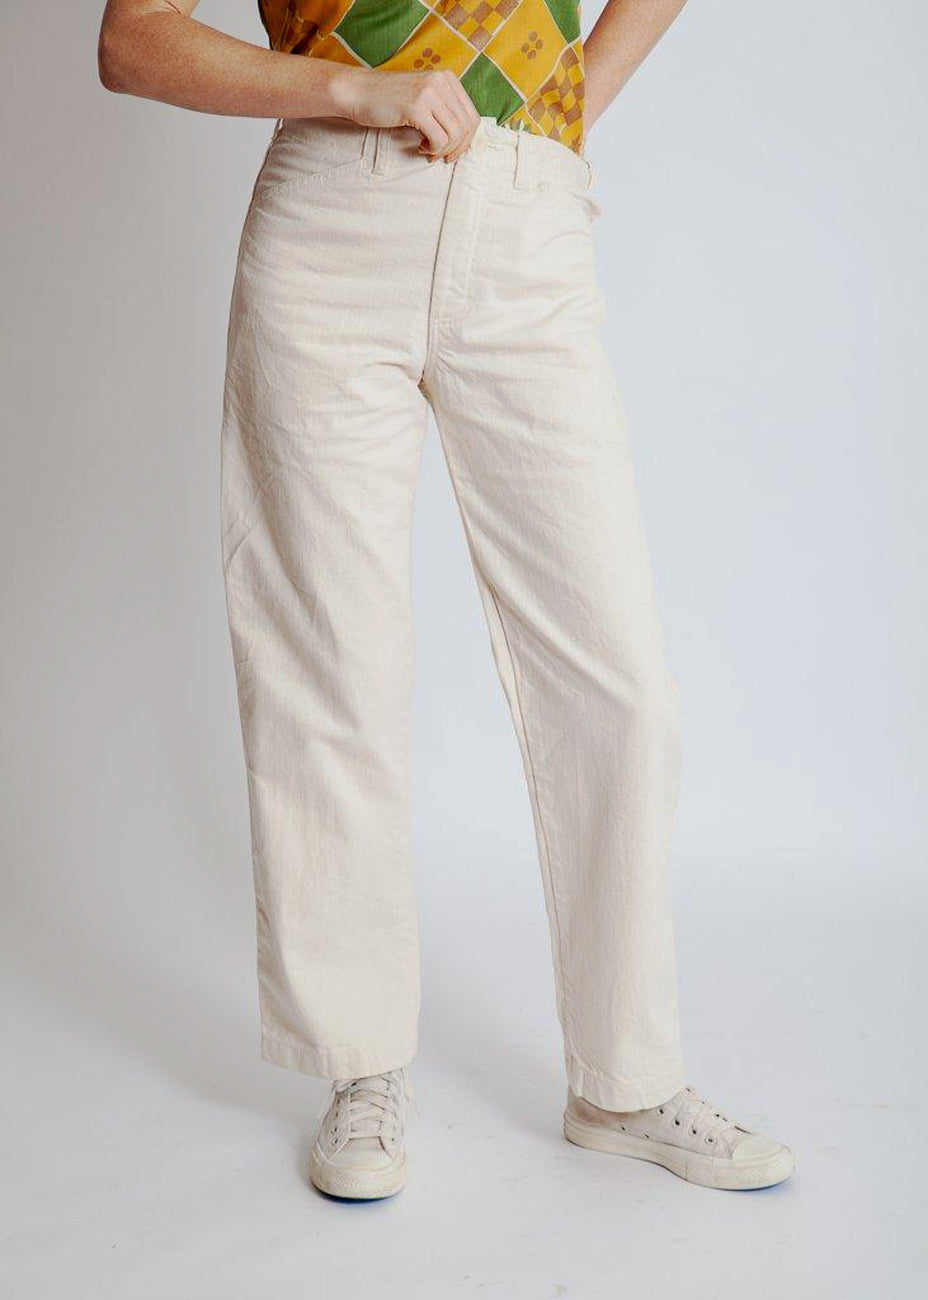 painter pants in natural